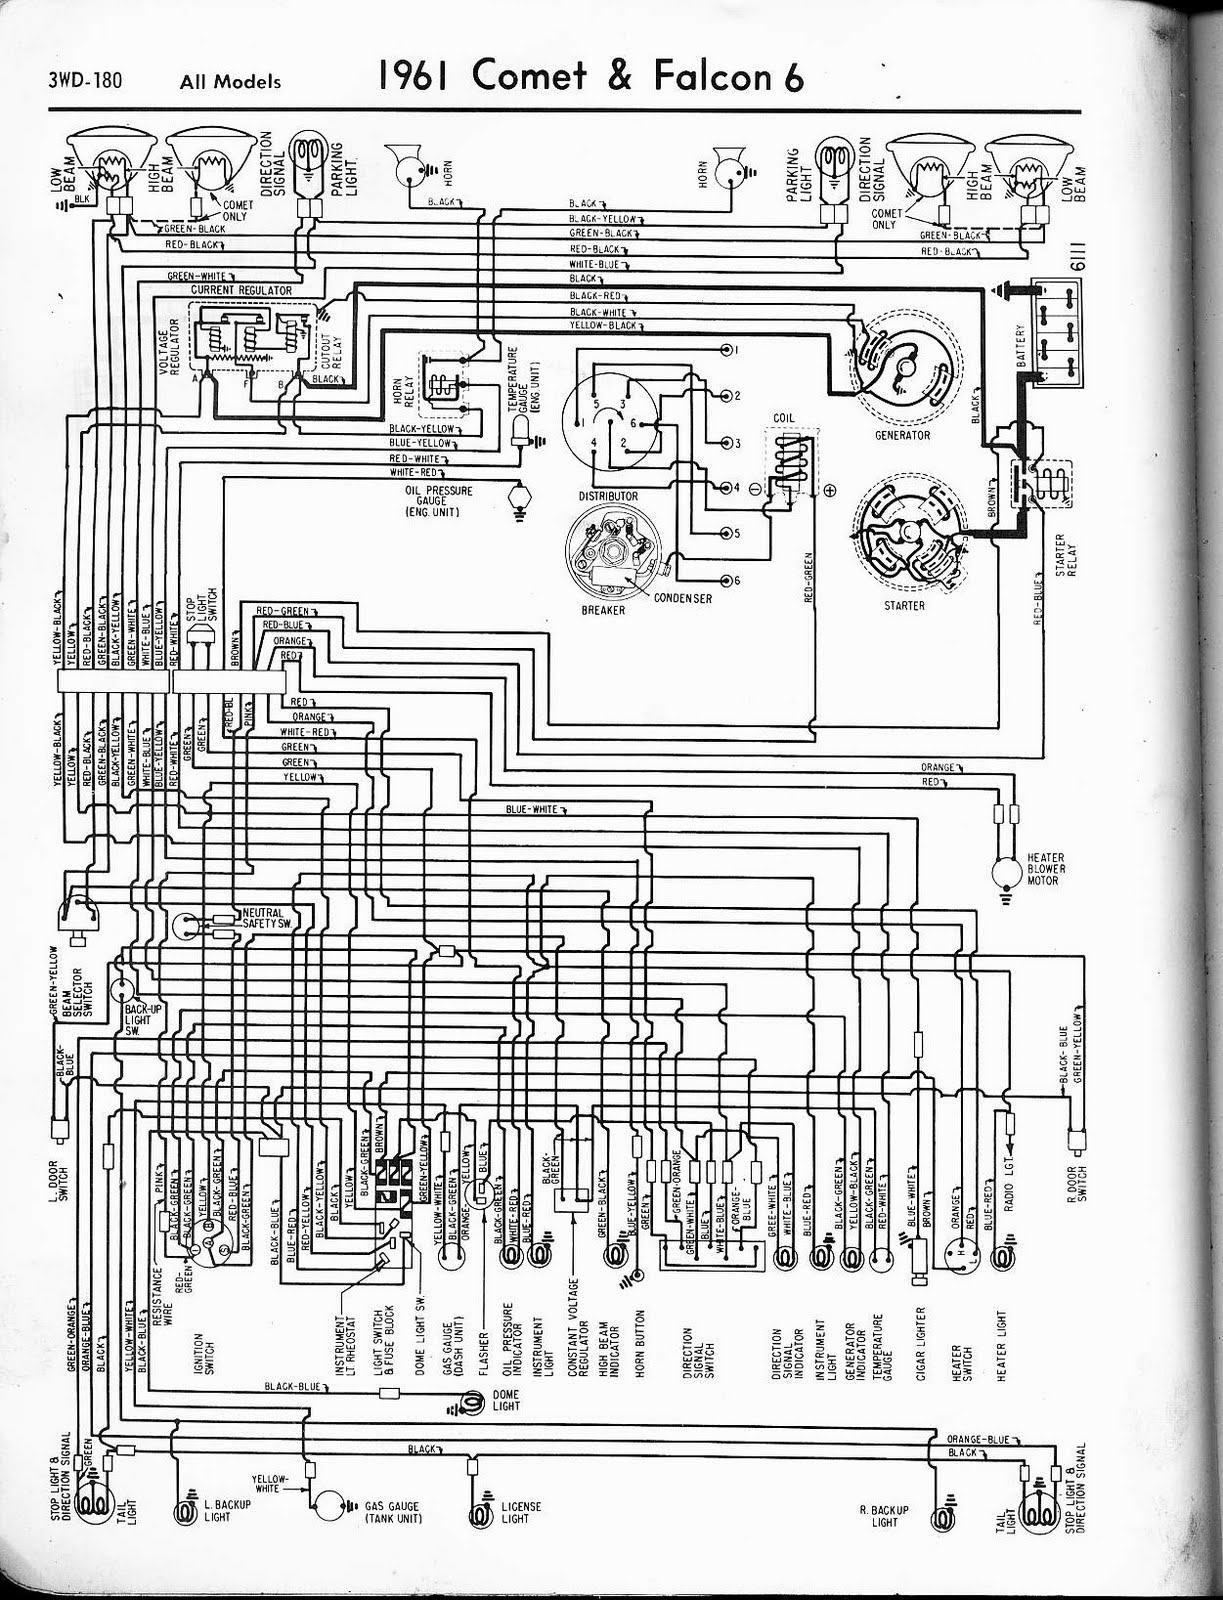 A S le furthermore Bug moreover Chrysler likewise Tbird Fuse furthermore Cadillac Windows Wiring Diagram. on 1961 cadillac wiring diagram